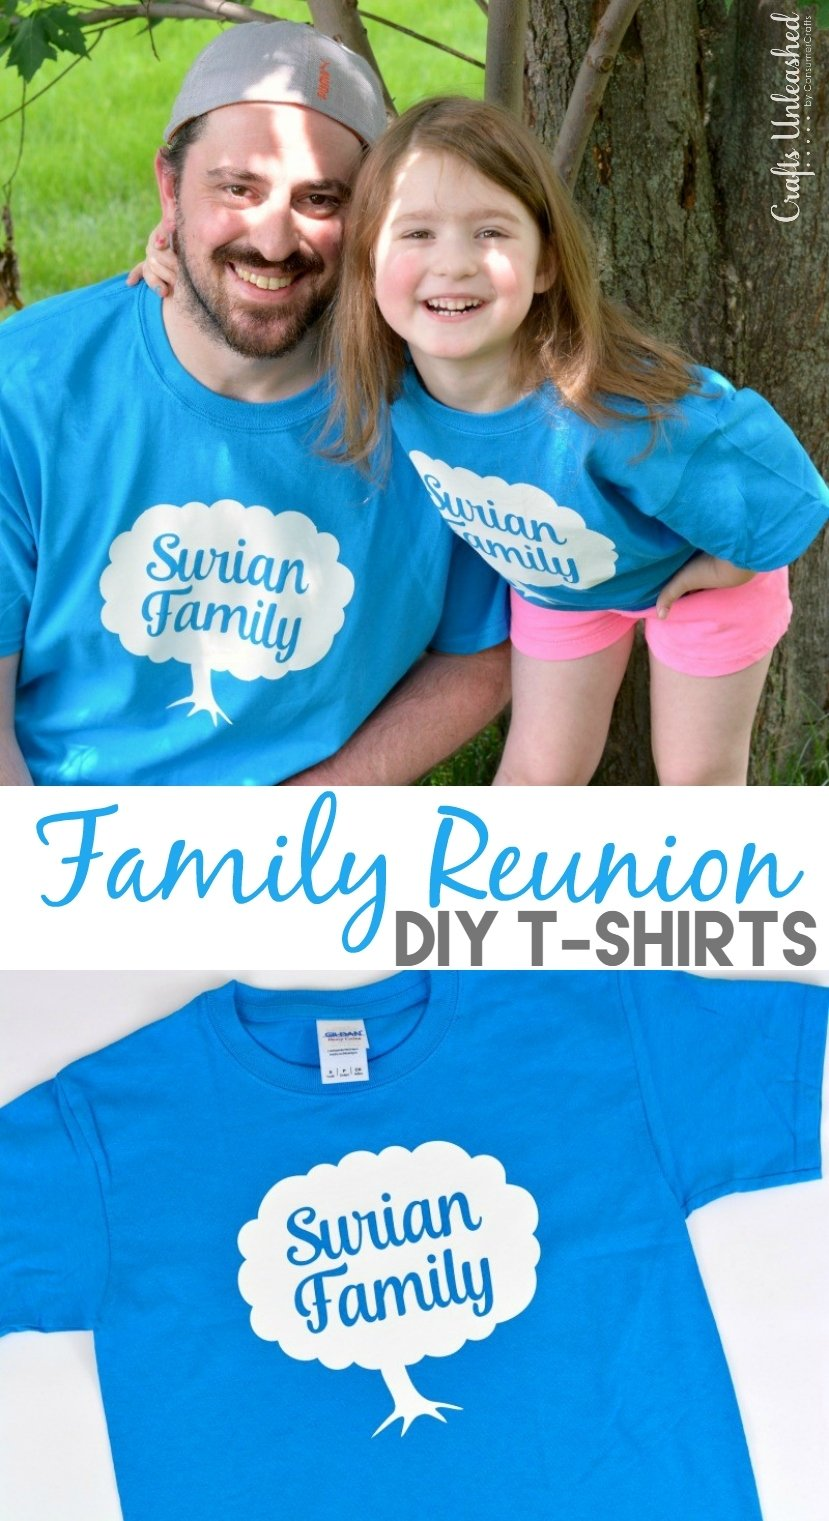 10 Ideal Family Reunion T Shirt Ideas family reunion t shirts idea diy crafts unleashed